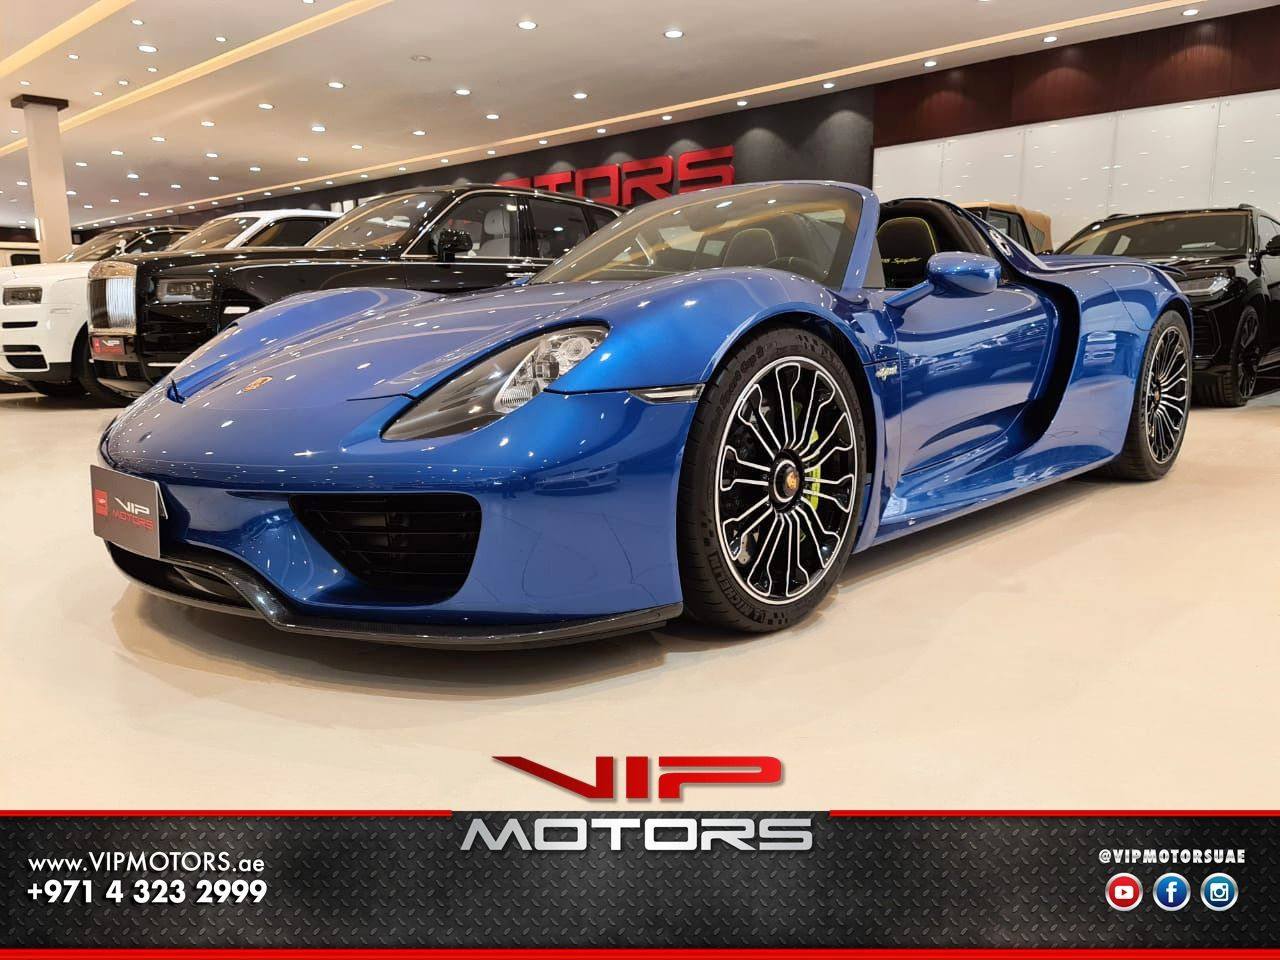 Porsche-918-Spider-Blue-2015-Front-Side-View-Vip-Motors